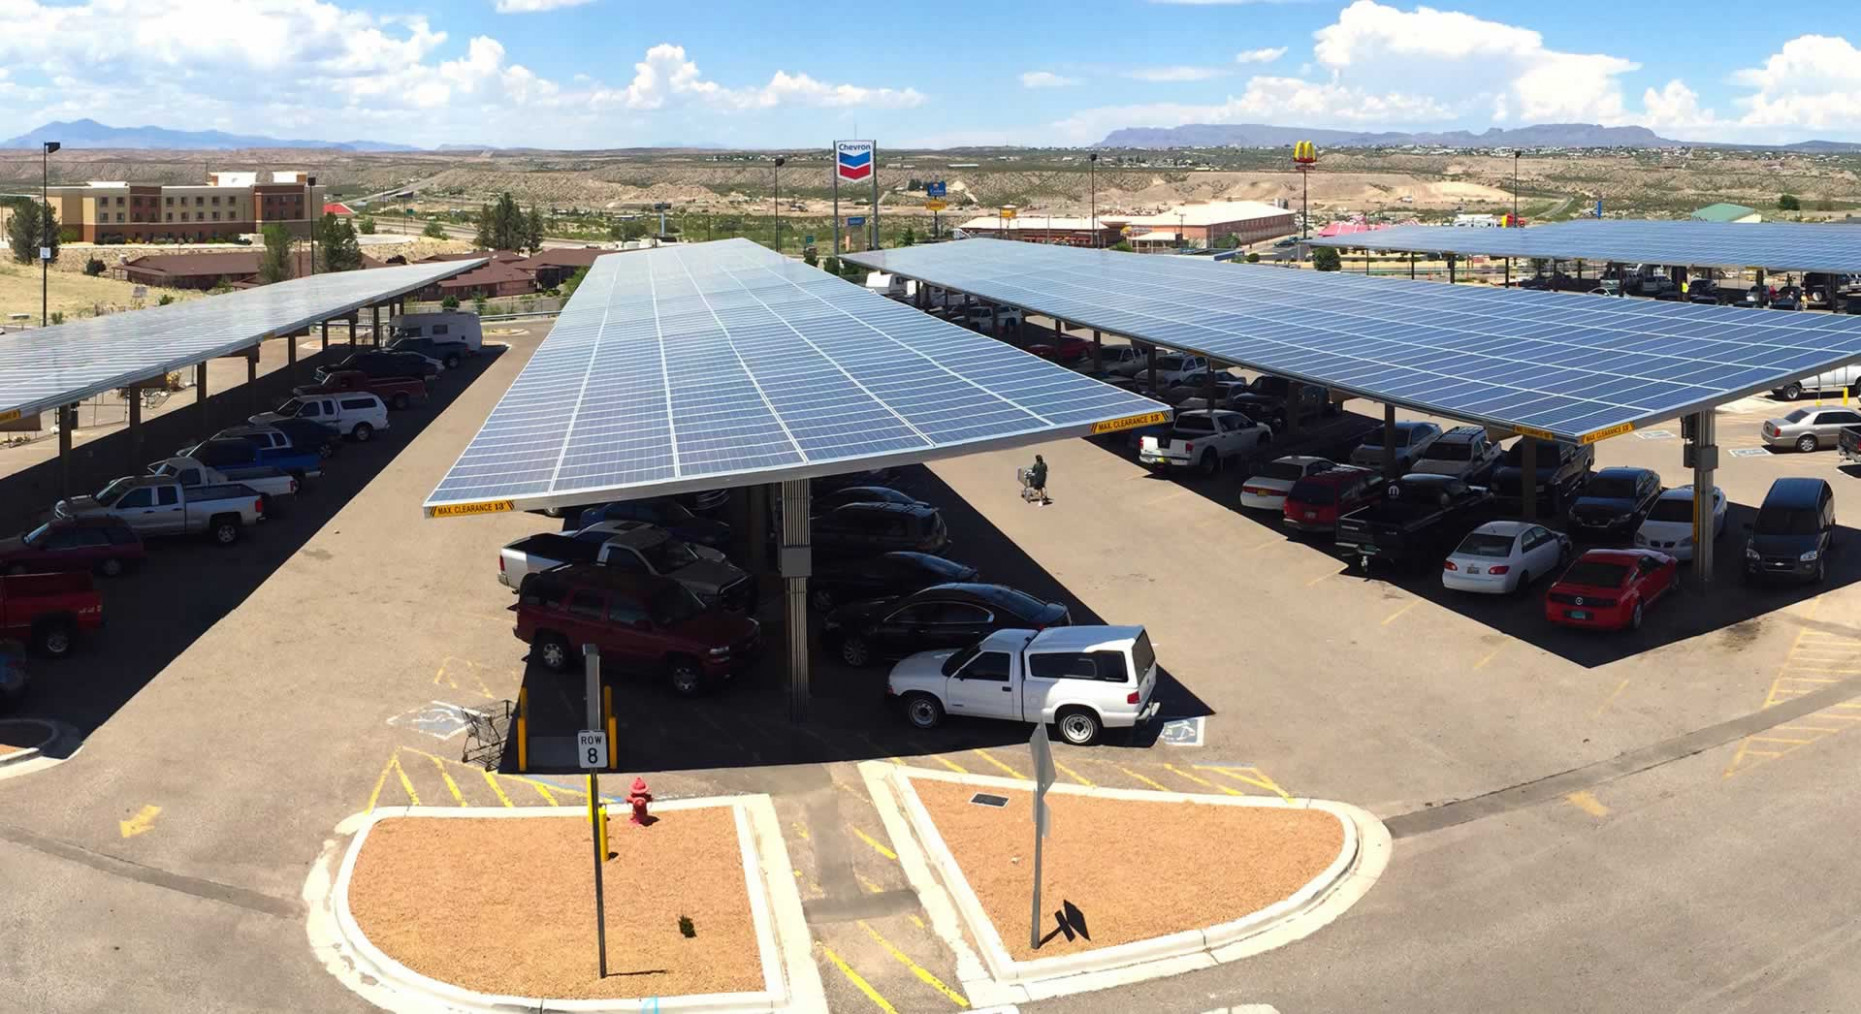 Powers Solar Frame Carport Gallery Solar Carports Parking Lots